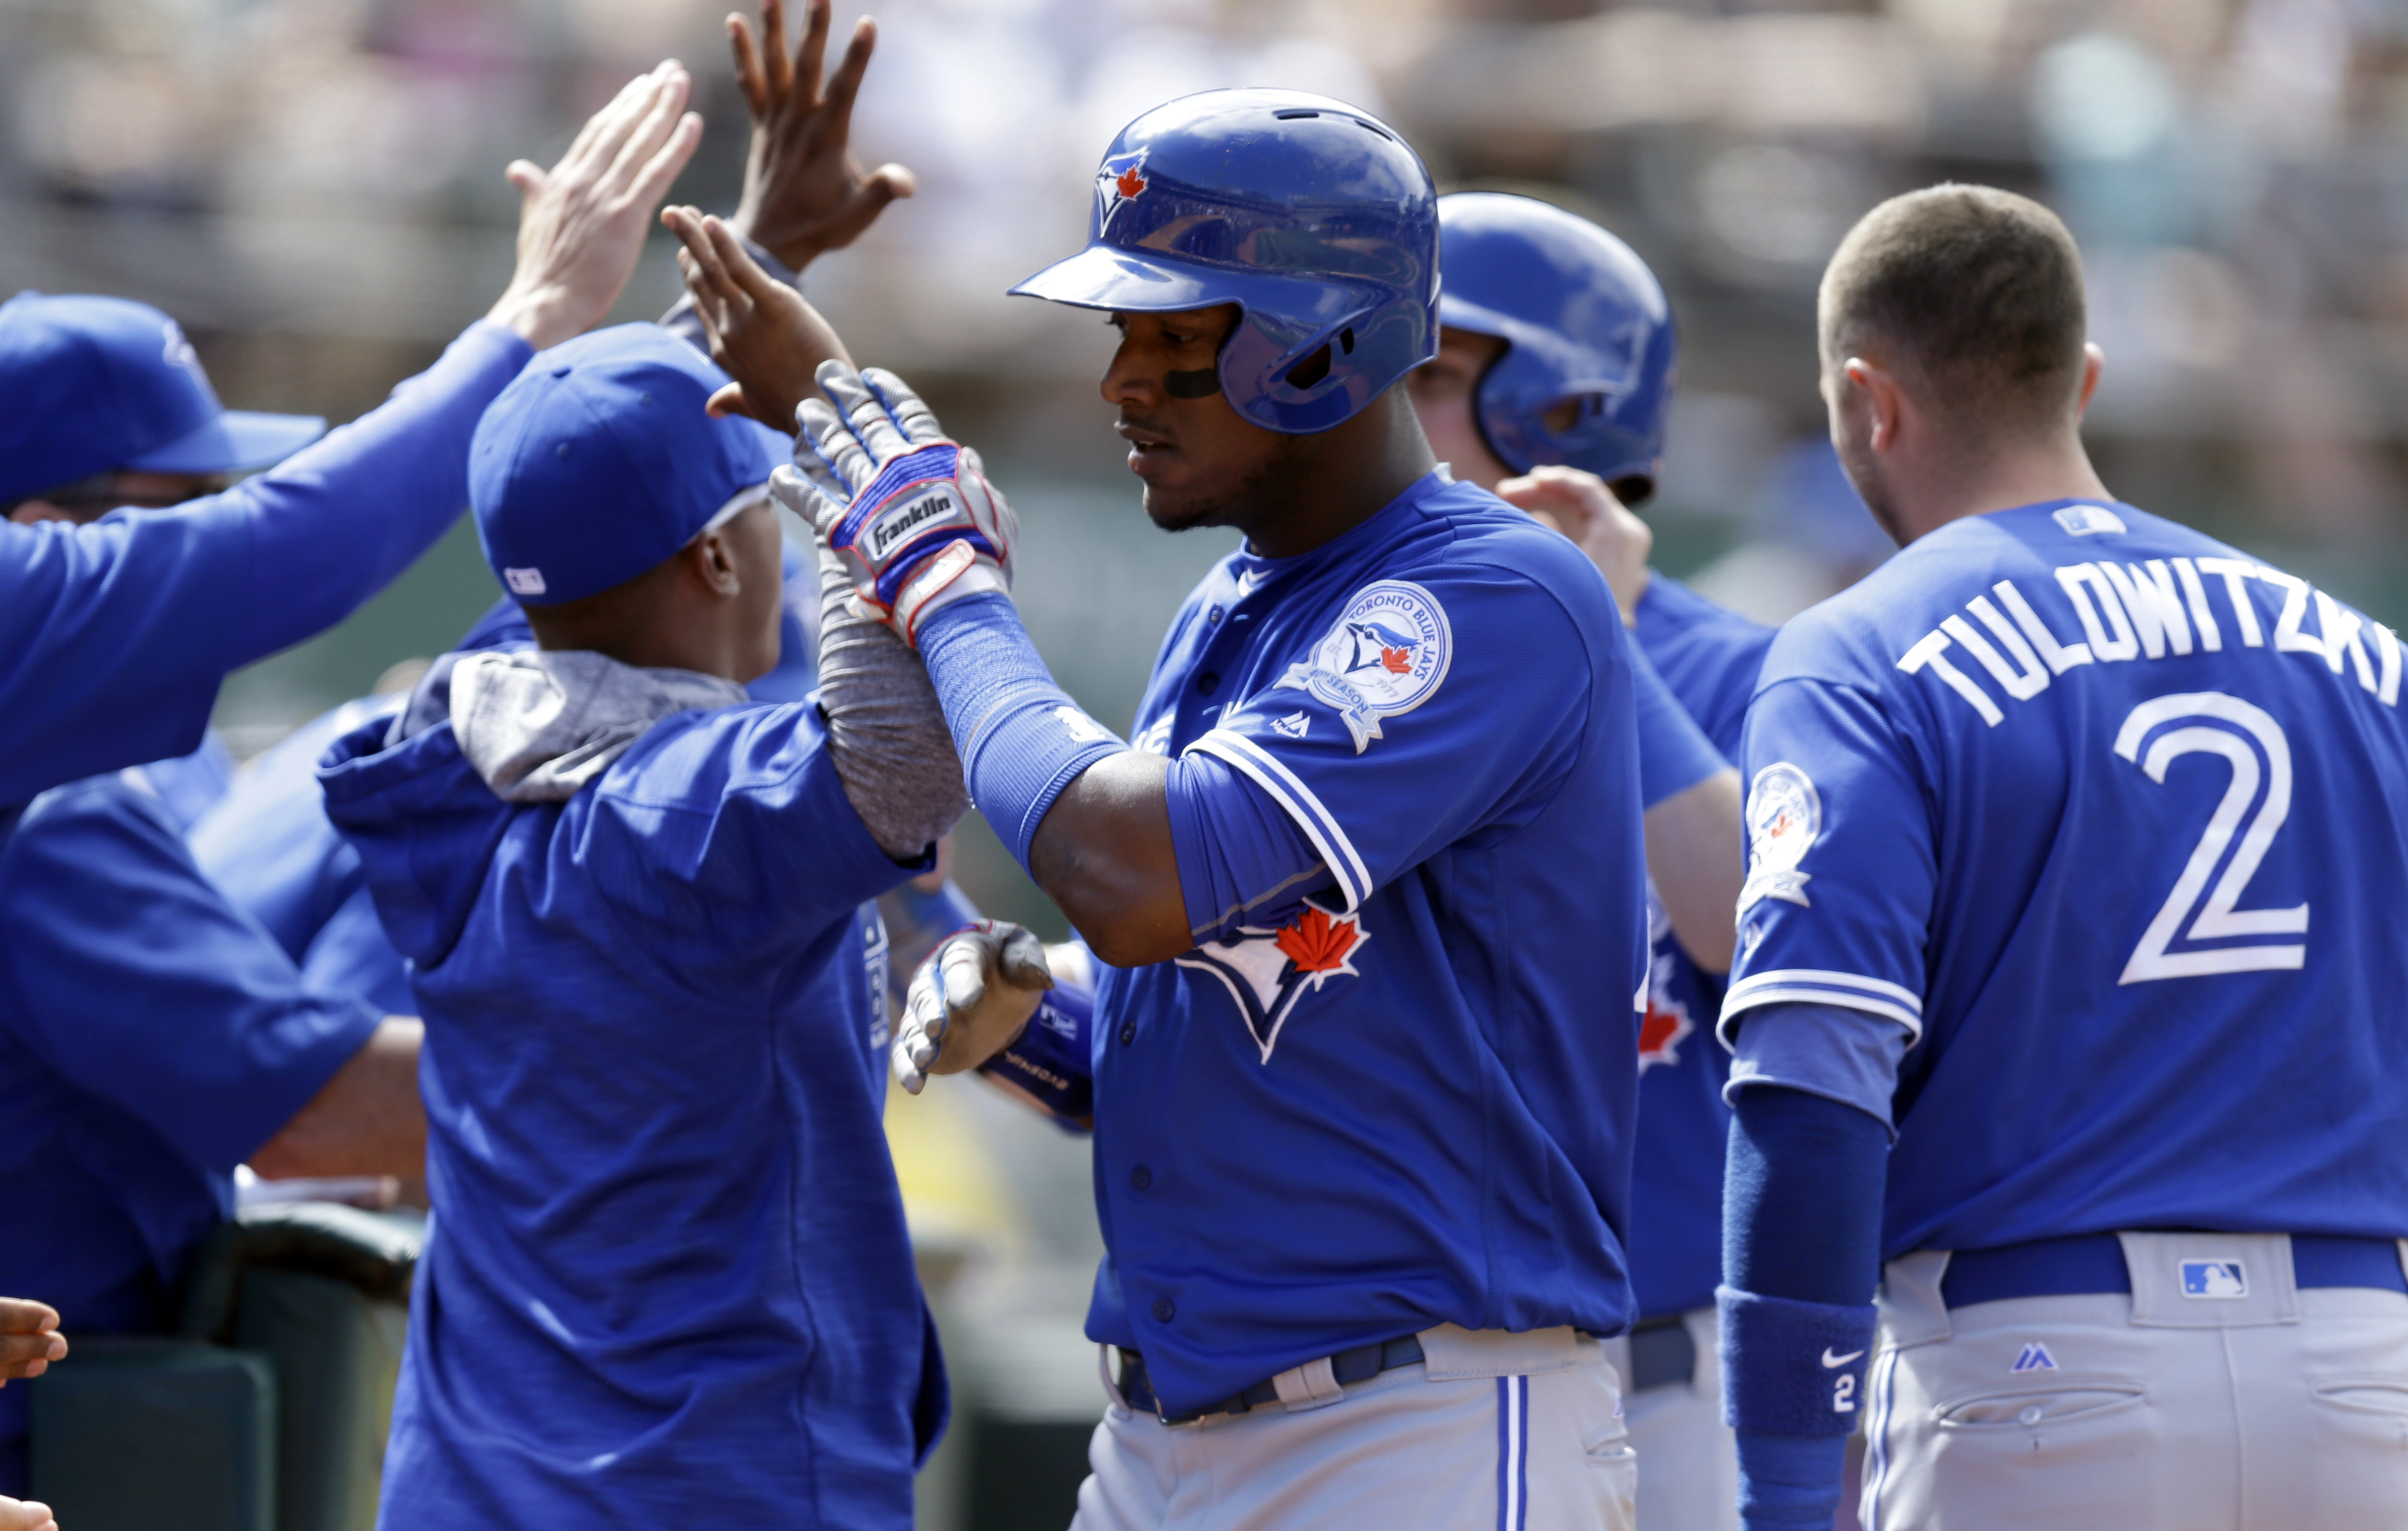 Toronto Blue Jays' Junior Lake celebrates after scoring against the Oakland Athletics in the ninth inning of a baseball game Sunday, July 17, 2016, in Oakland, Calif. Lake scored on a double by Toronto's Josh Donaldson. (AP Photo/Ben Margot)